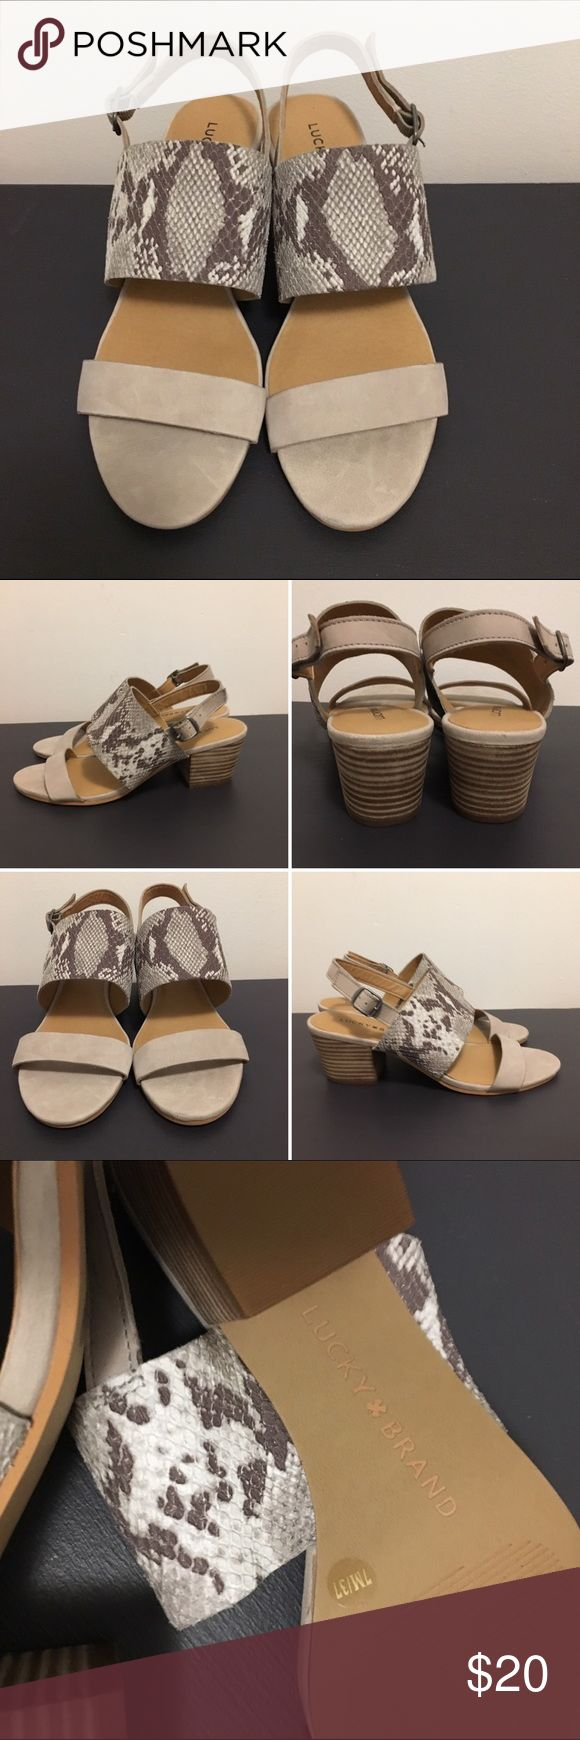 Lucky Brand Cream leather Sandals These sandals have never been worn ! Upper genuine leather - size 7 with wooden heels that measure 2 inches in height. Lucky Brand Shoes Sandals